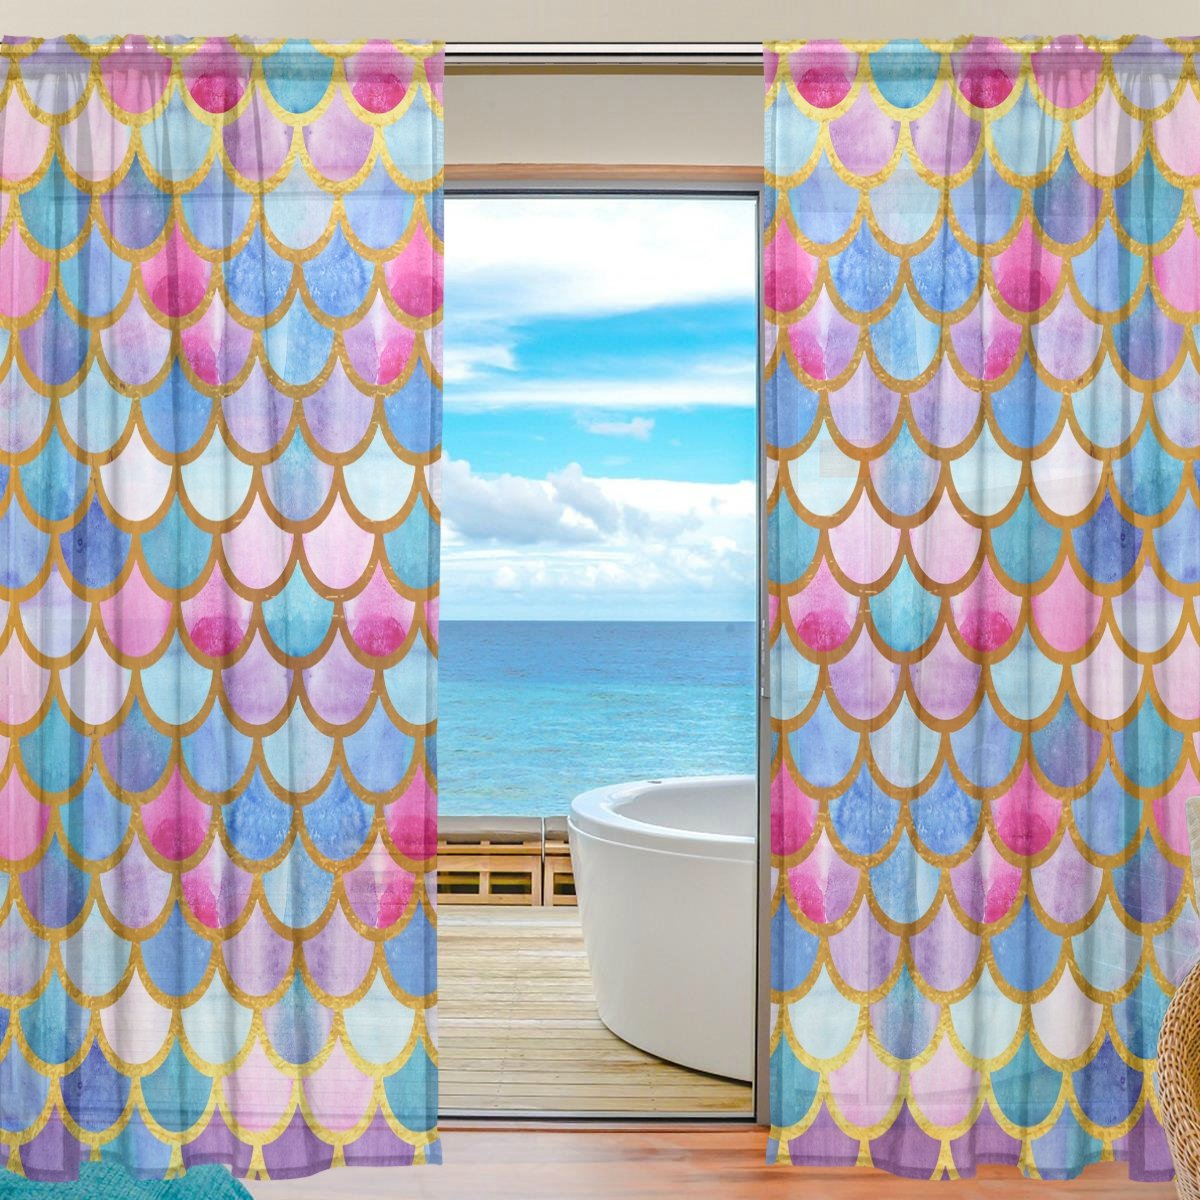 SEULIFE Window Sheer Curtain, Sea Ocean Animal Mermaid Fish Scales Voile Curtain Drapes for Door Kitchen Living Room Bedroom 55x78 inches 2 Panels g3770637p112c126s167